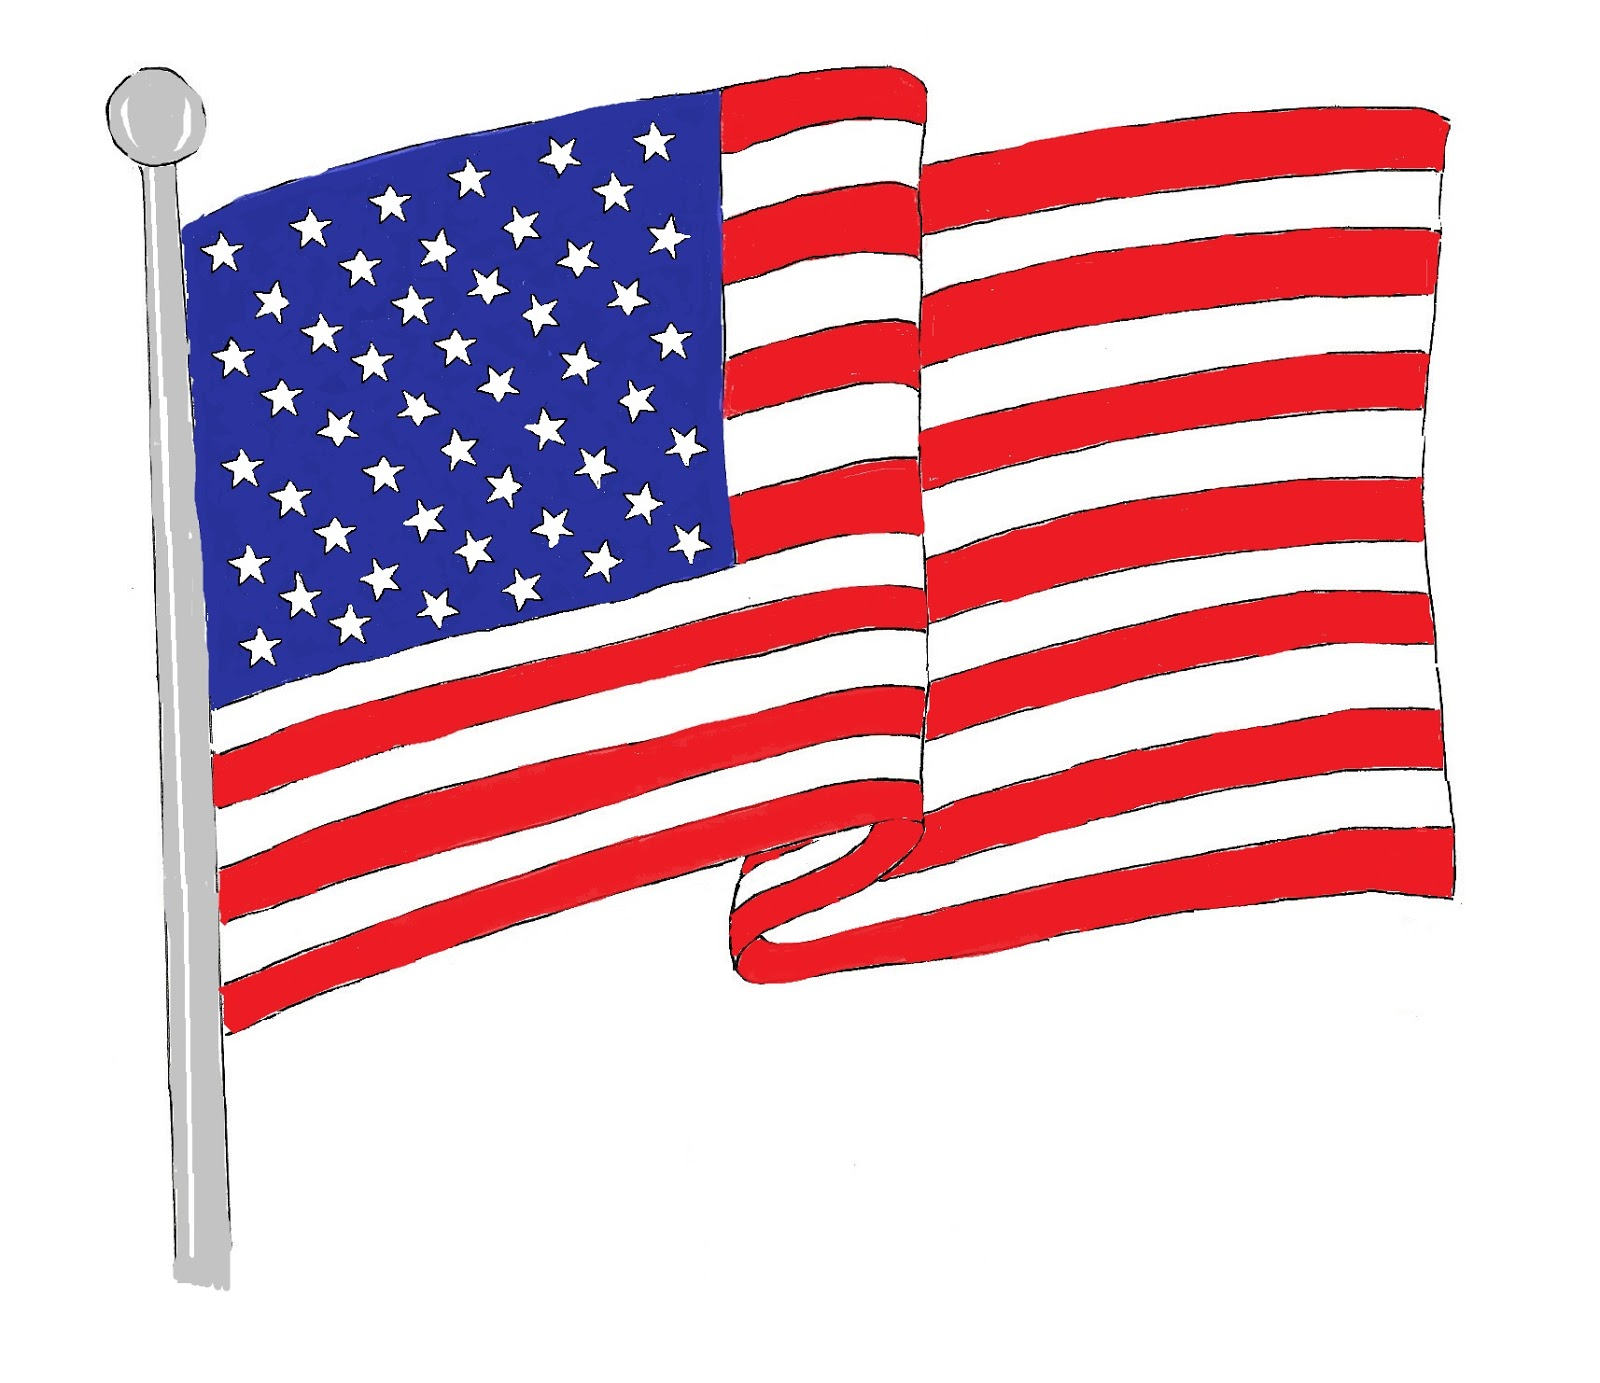 Flying flag clipart clipart free stock Us flag waving american flag clipart the cliparts - Clipartix clipart free stock